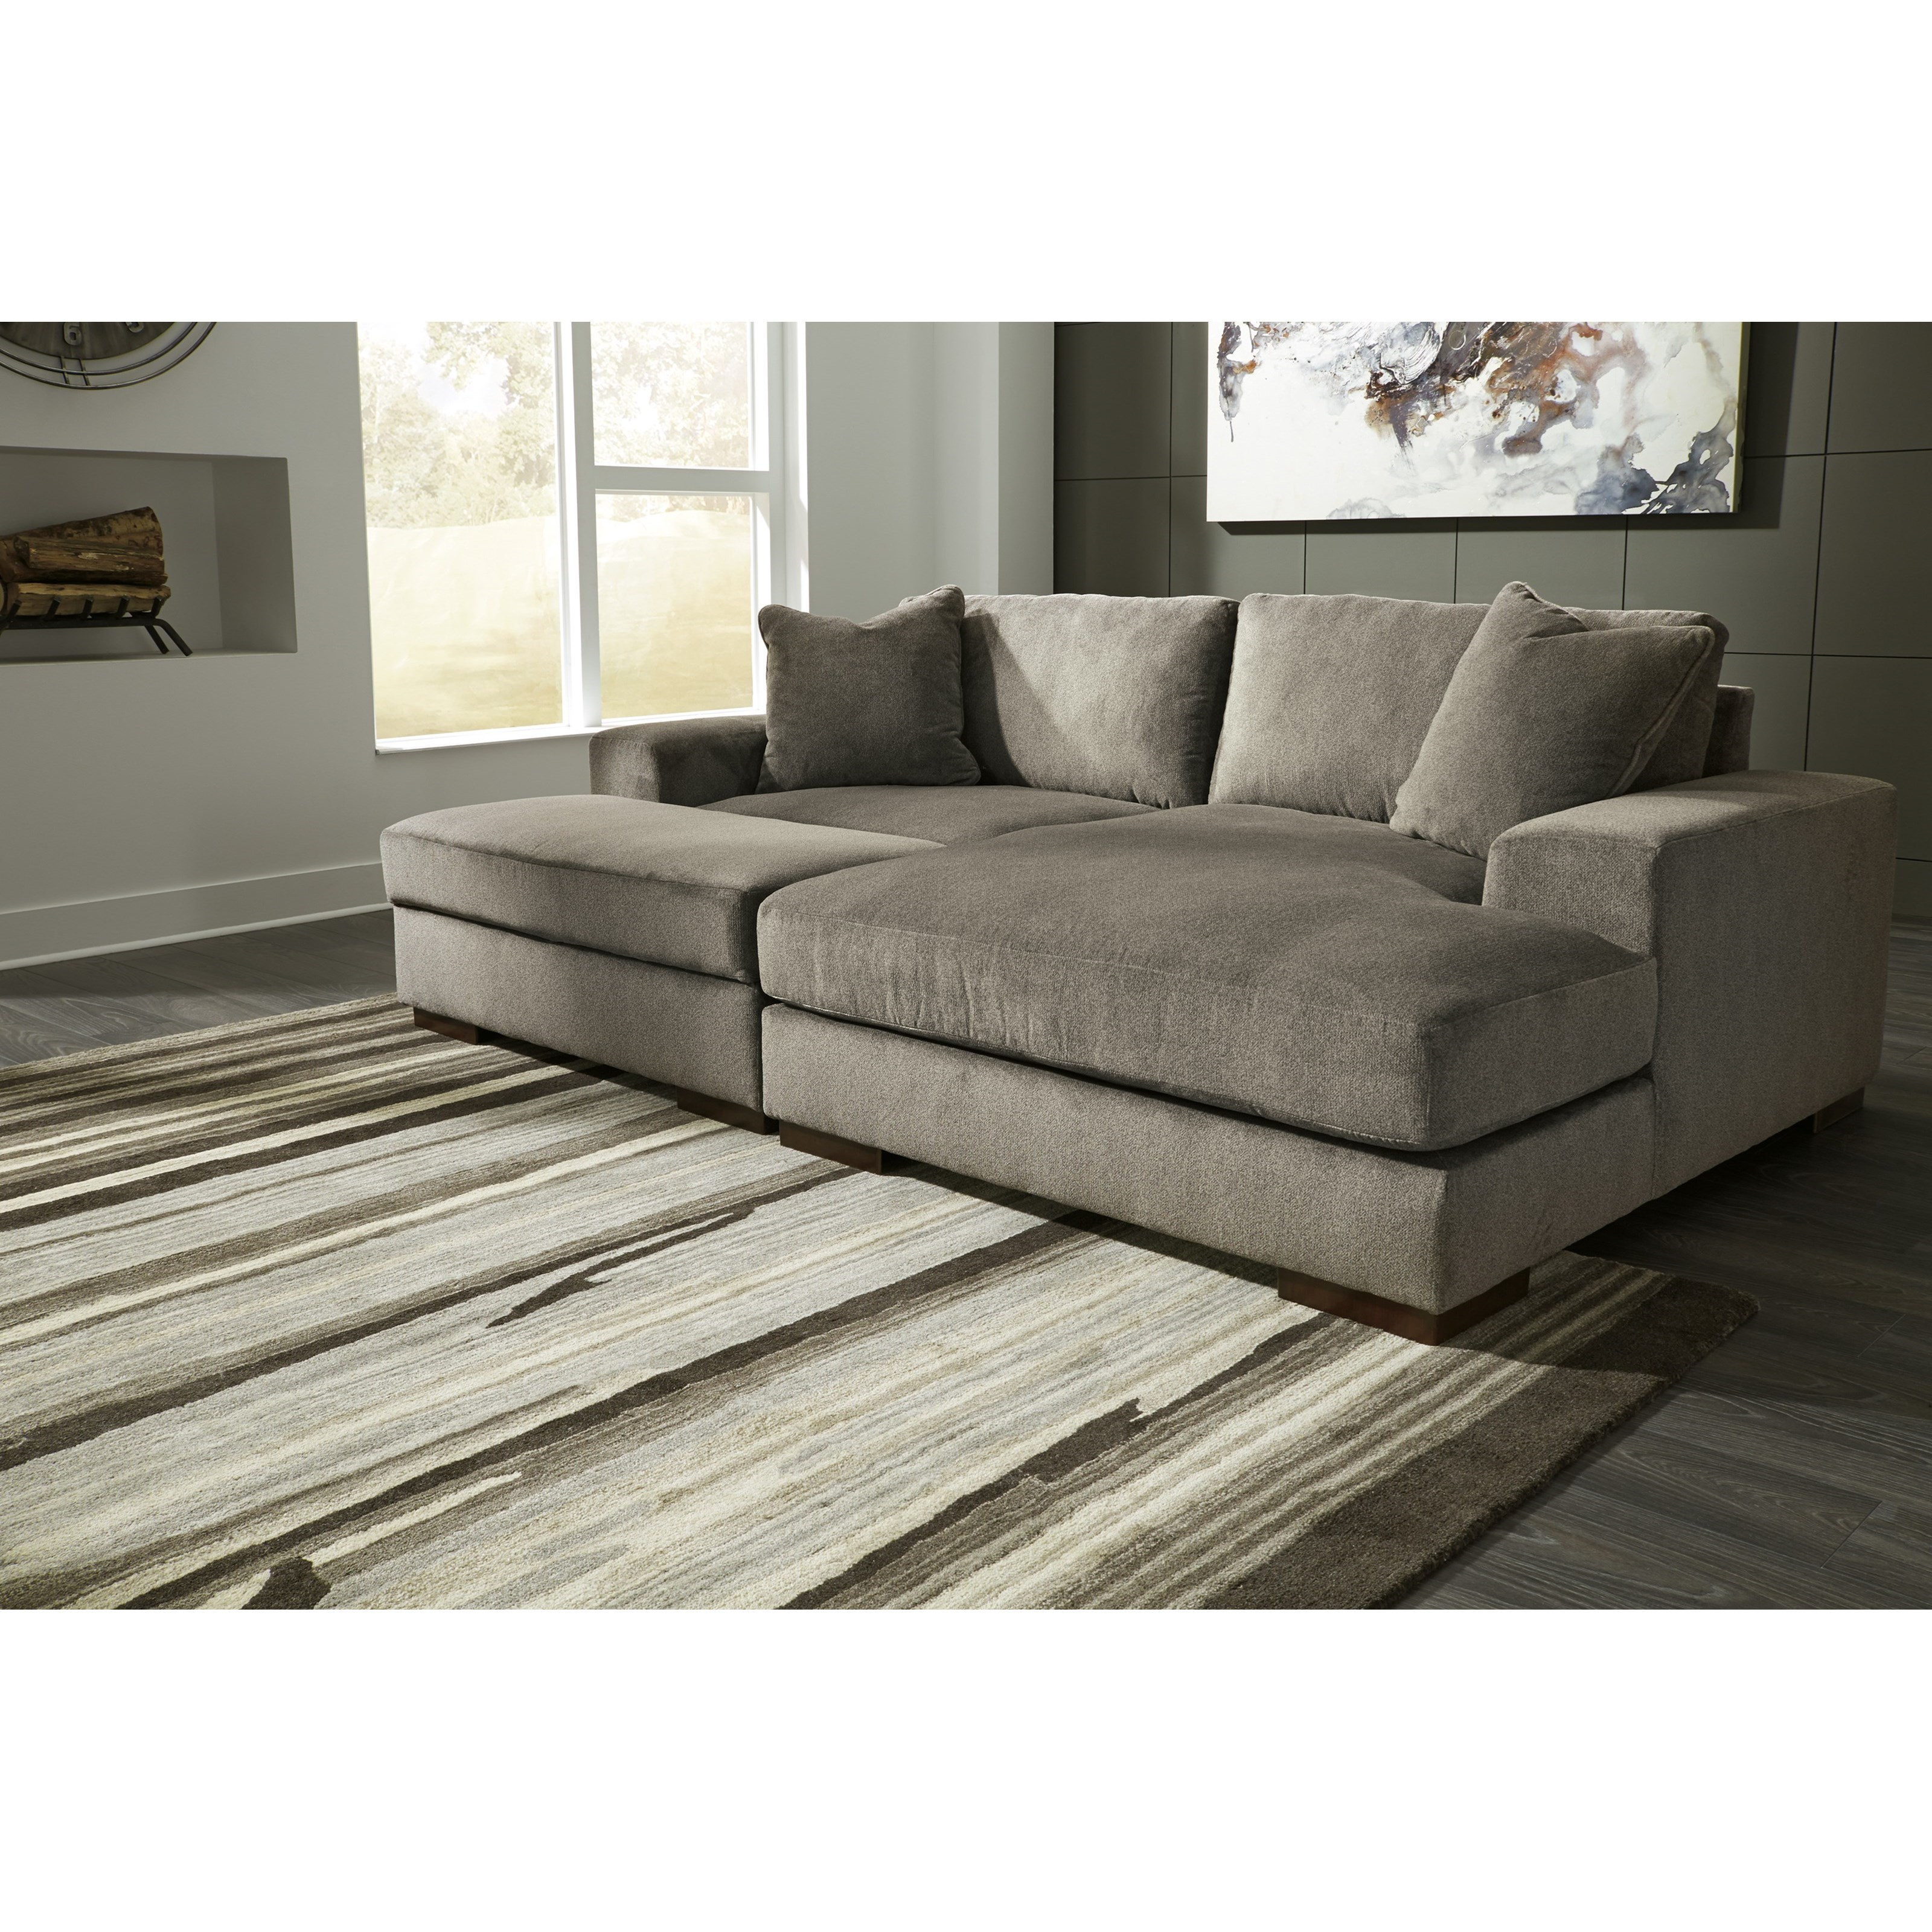 i separately patola with sold pin angle on the small park ashley furniture right by patina pieces cuddler this love sectional piece